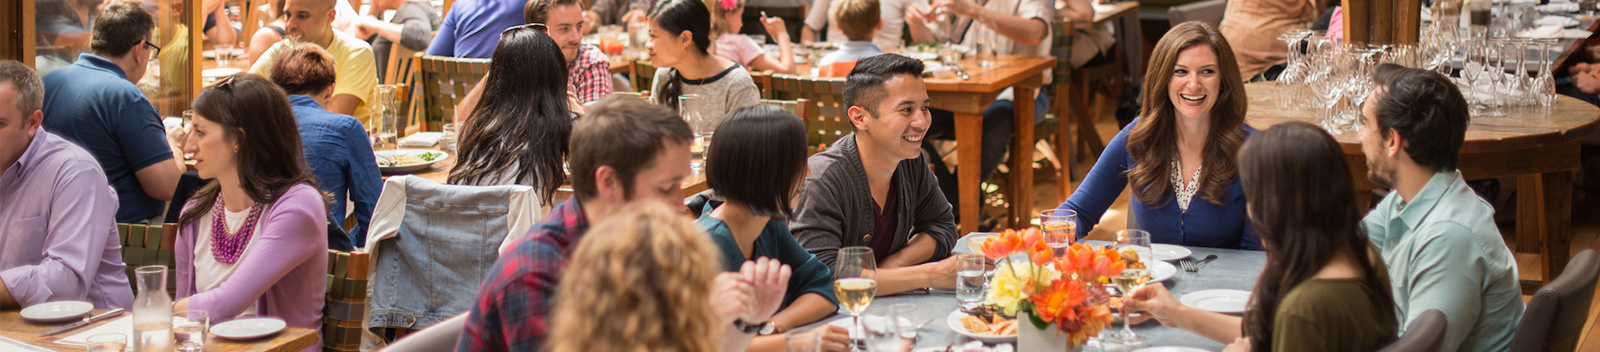 Seattle Restaurants For Large Parties Great For Groups Opentable